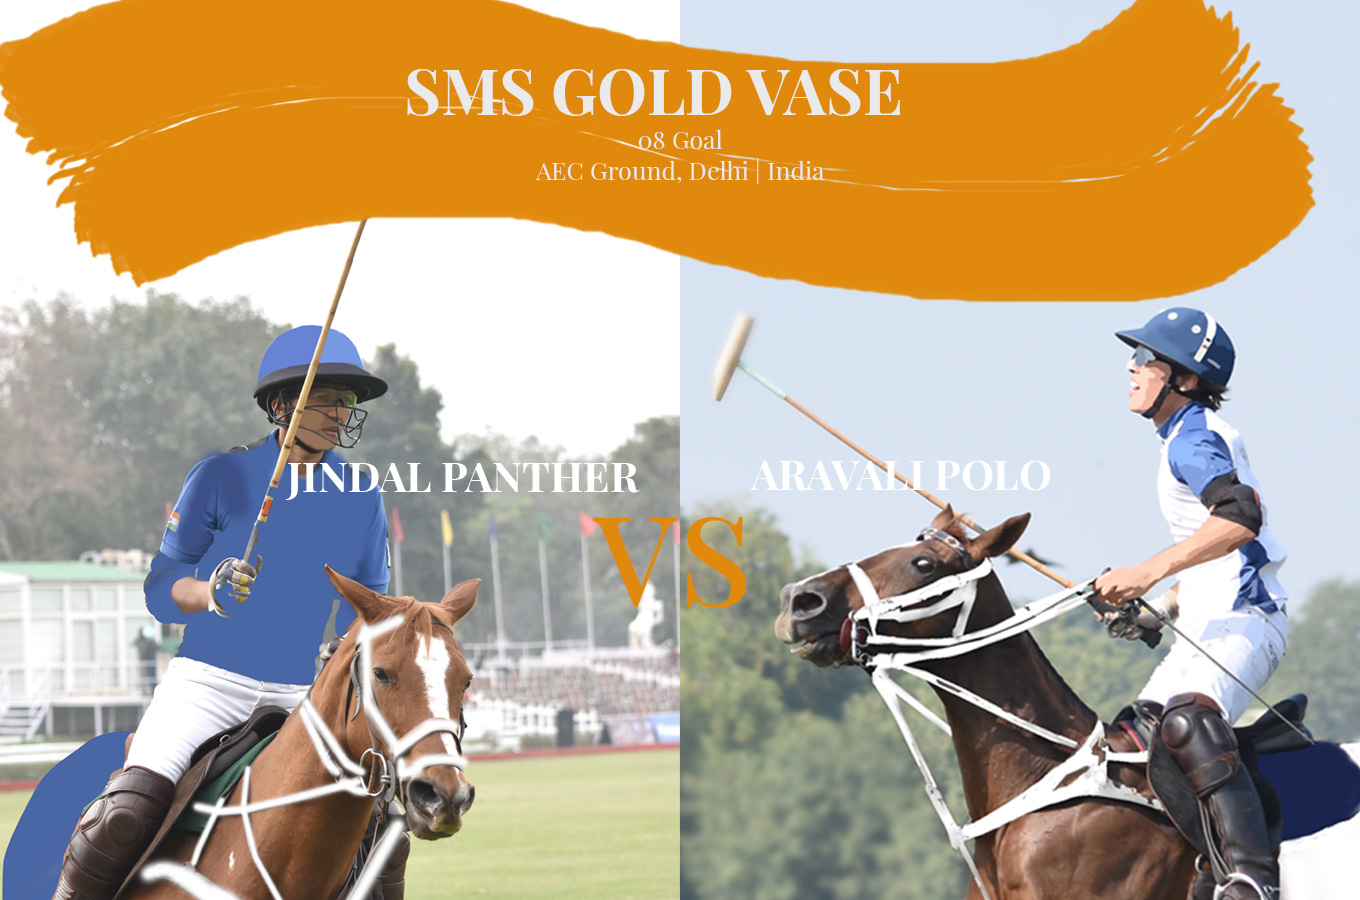 SMS gold vase cup